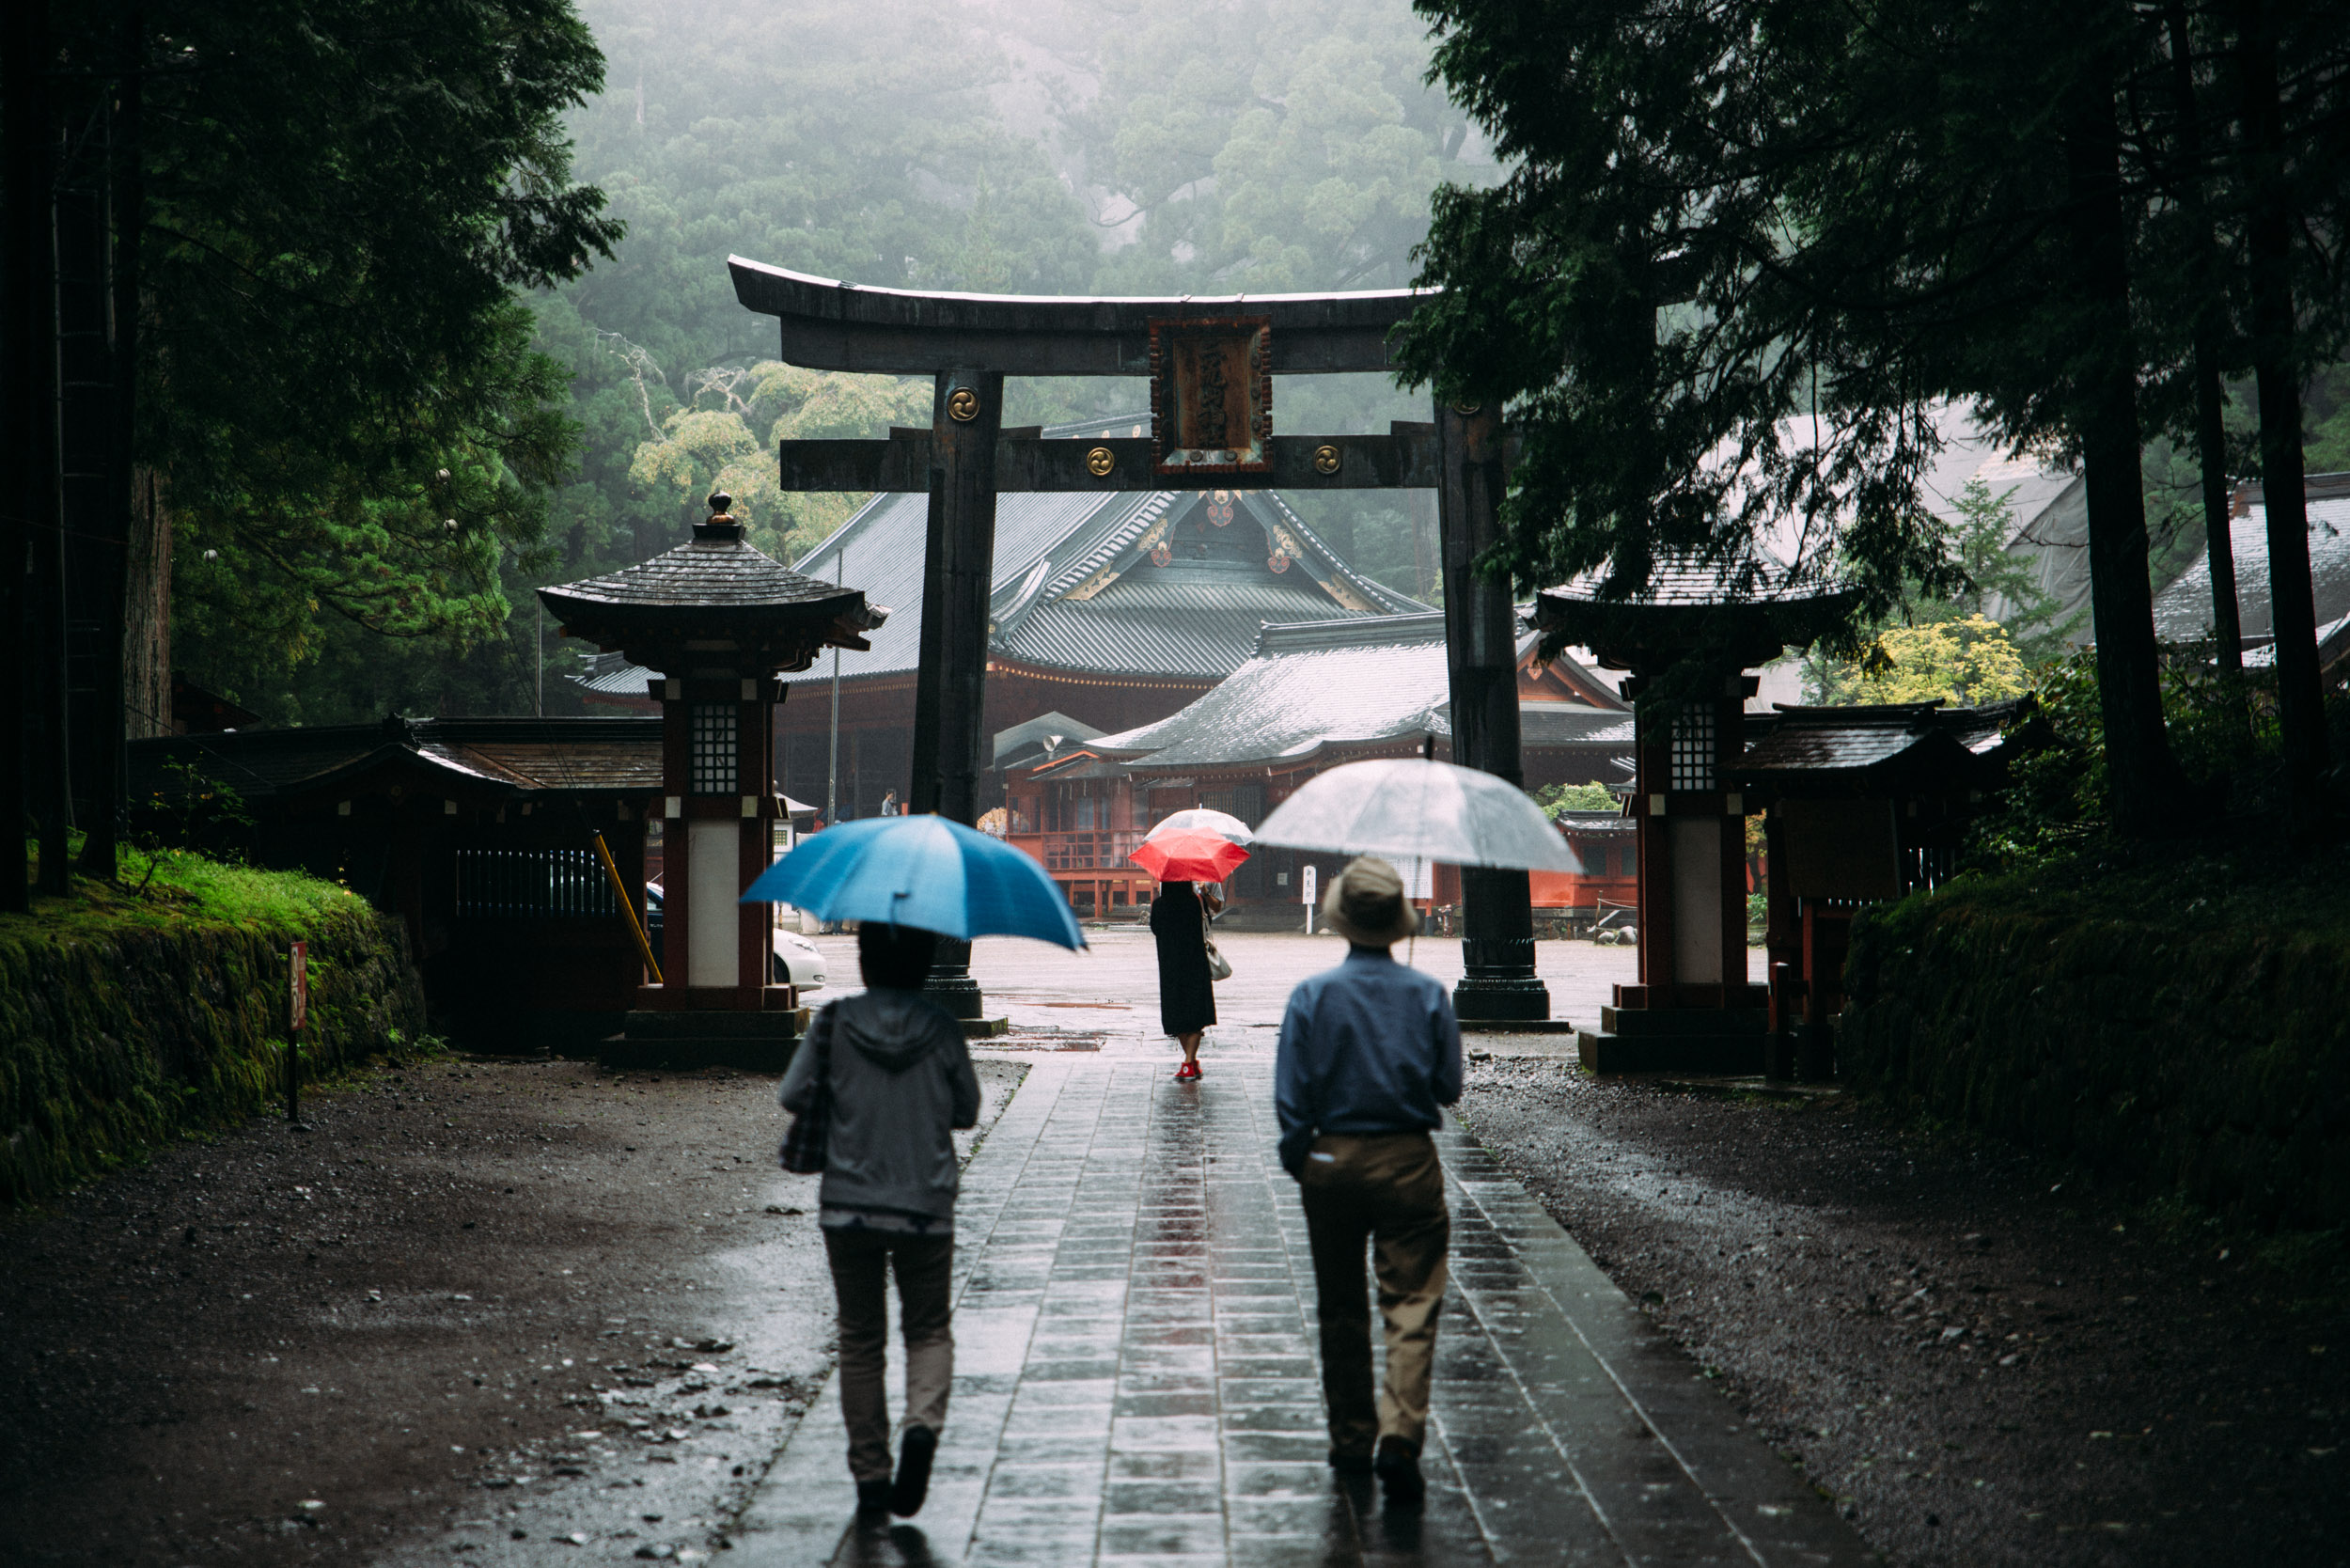 Japan can be very beautiful in the rain. This photo was shot in Nikko, about 90 minutes from downtown Tokyo.